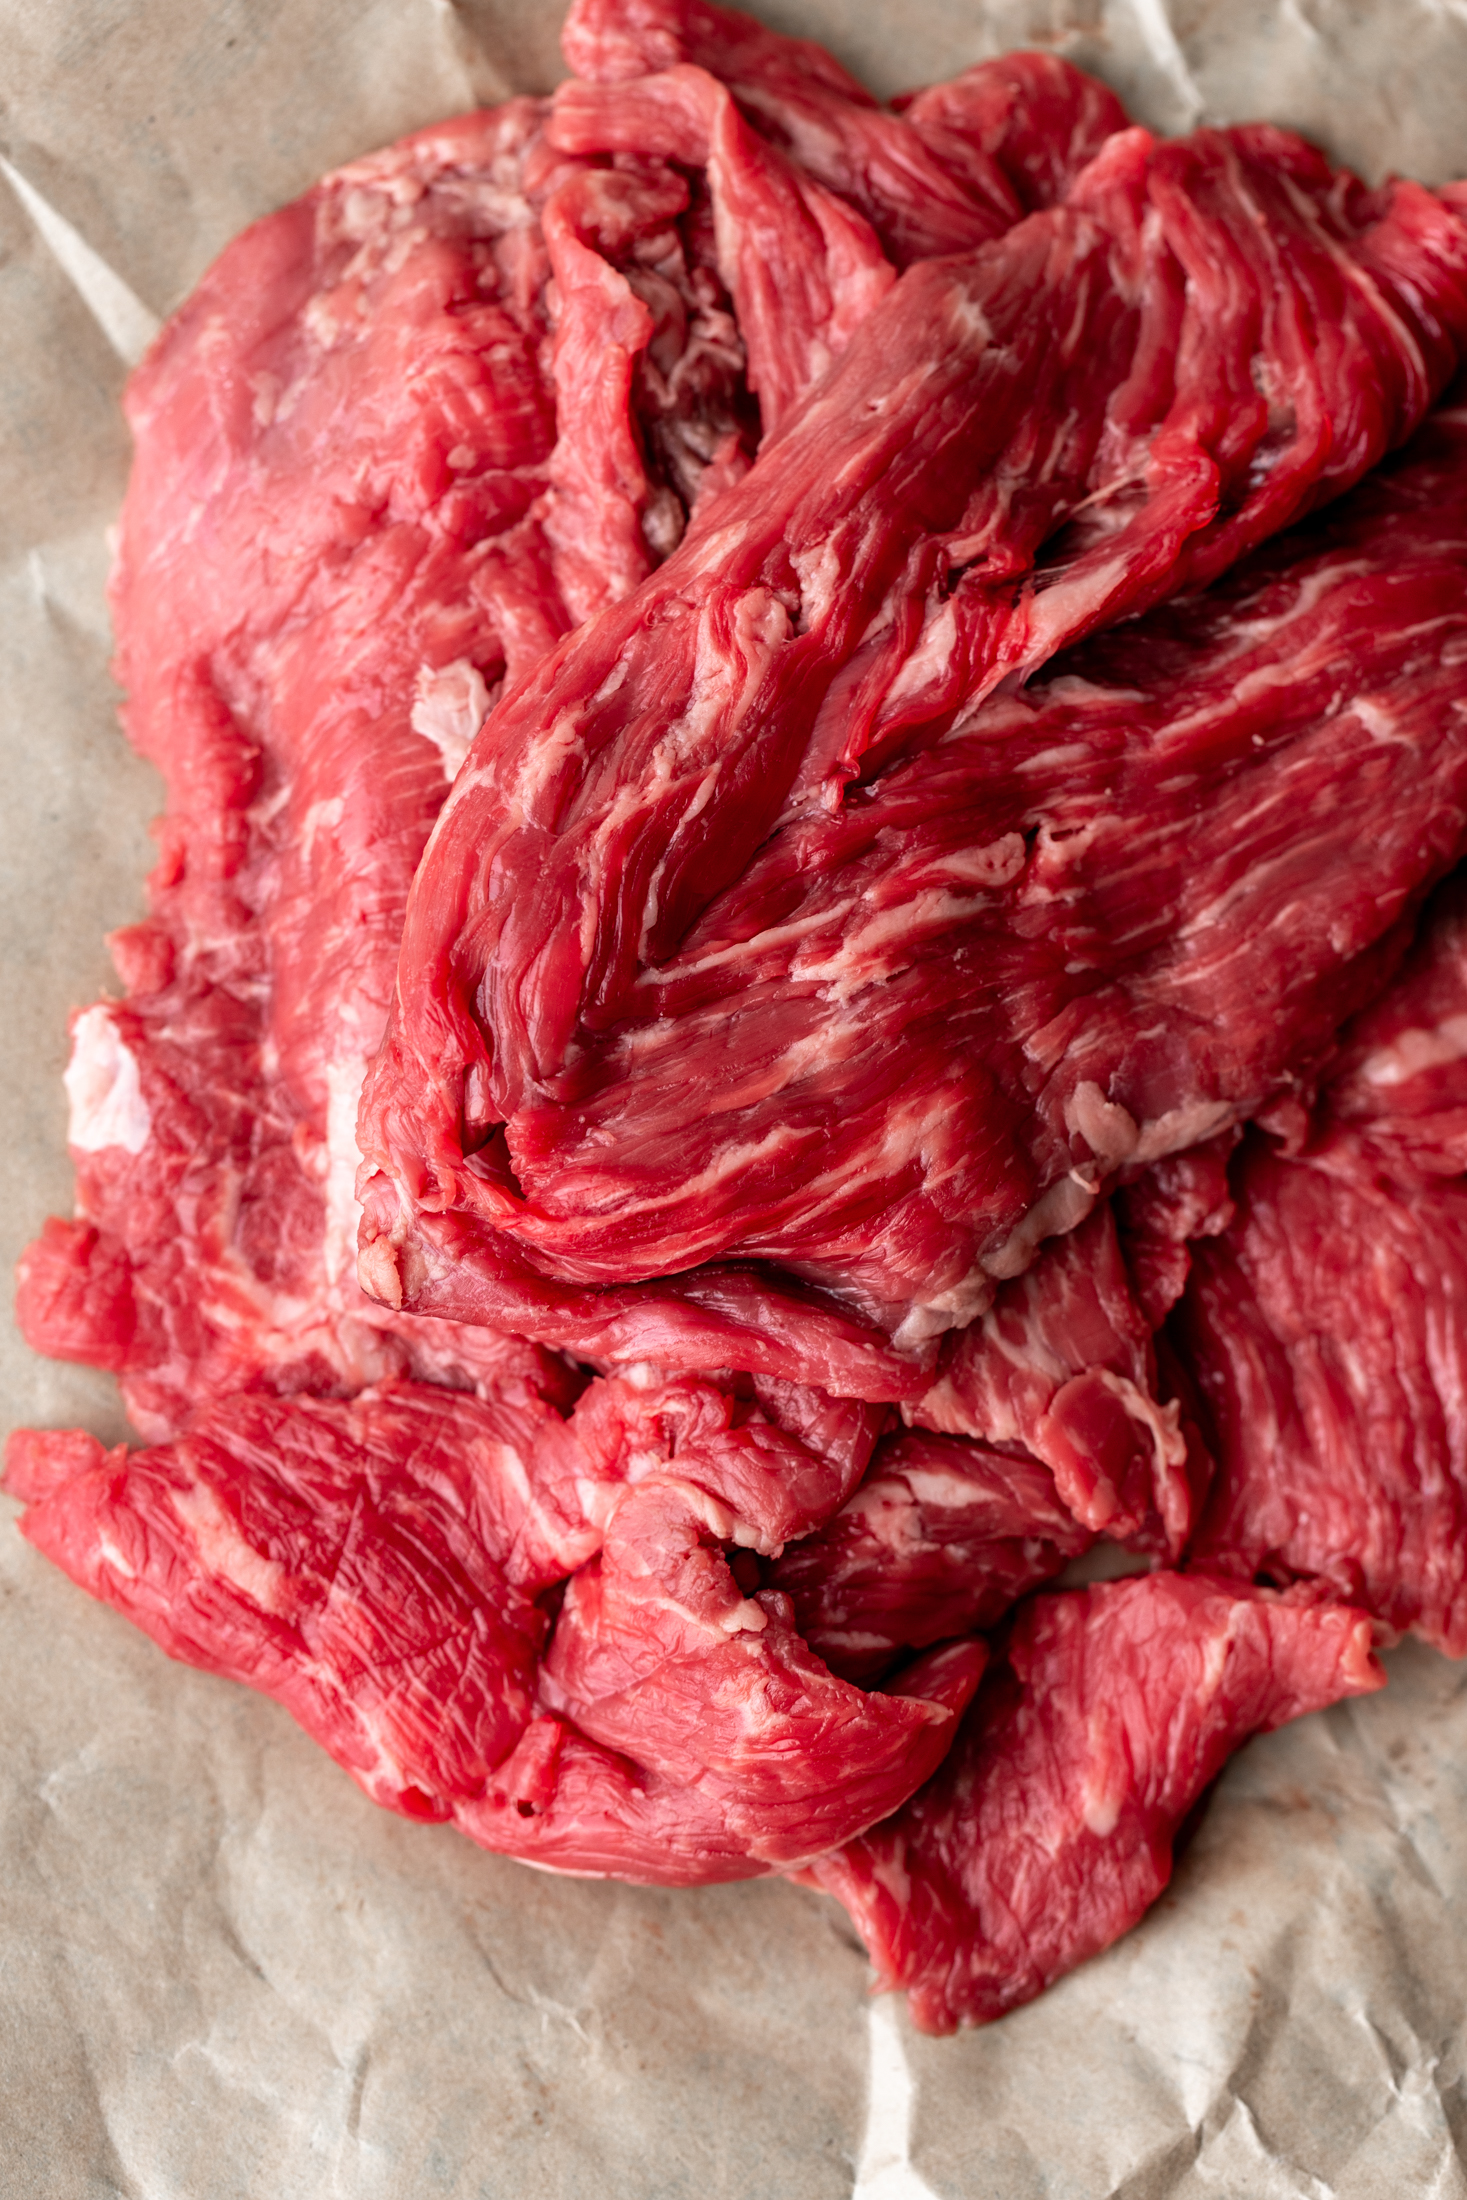 flank steak for mongolian beef